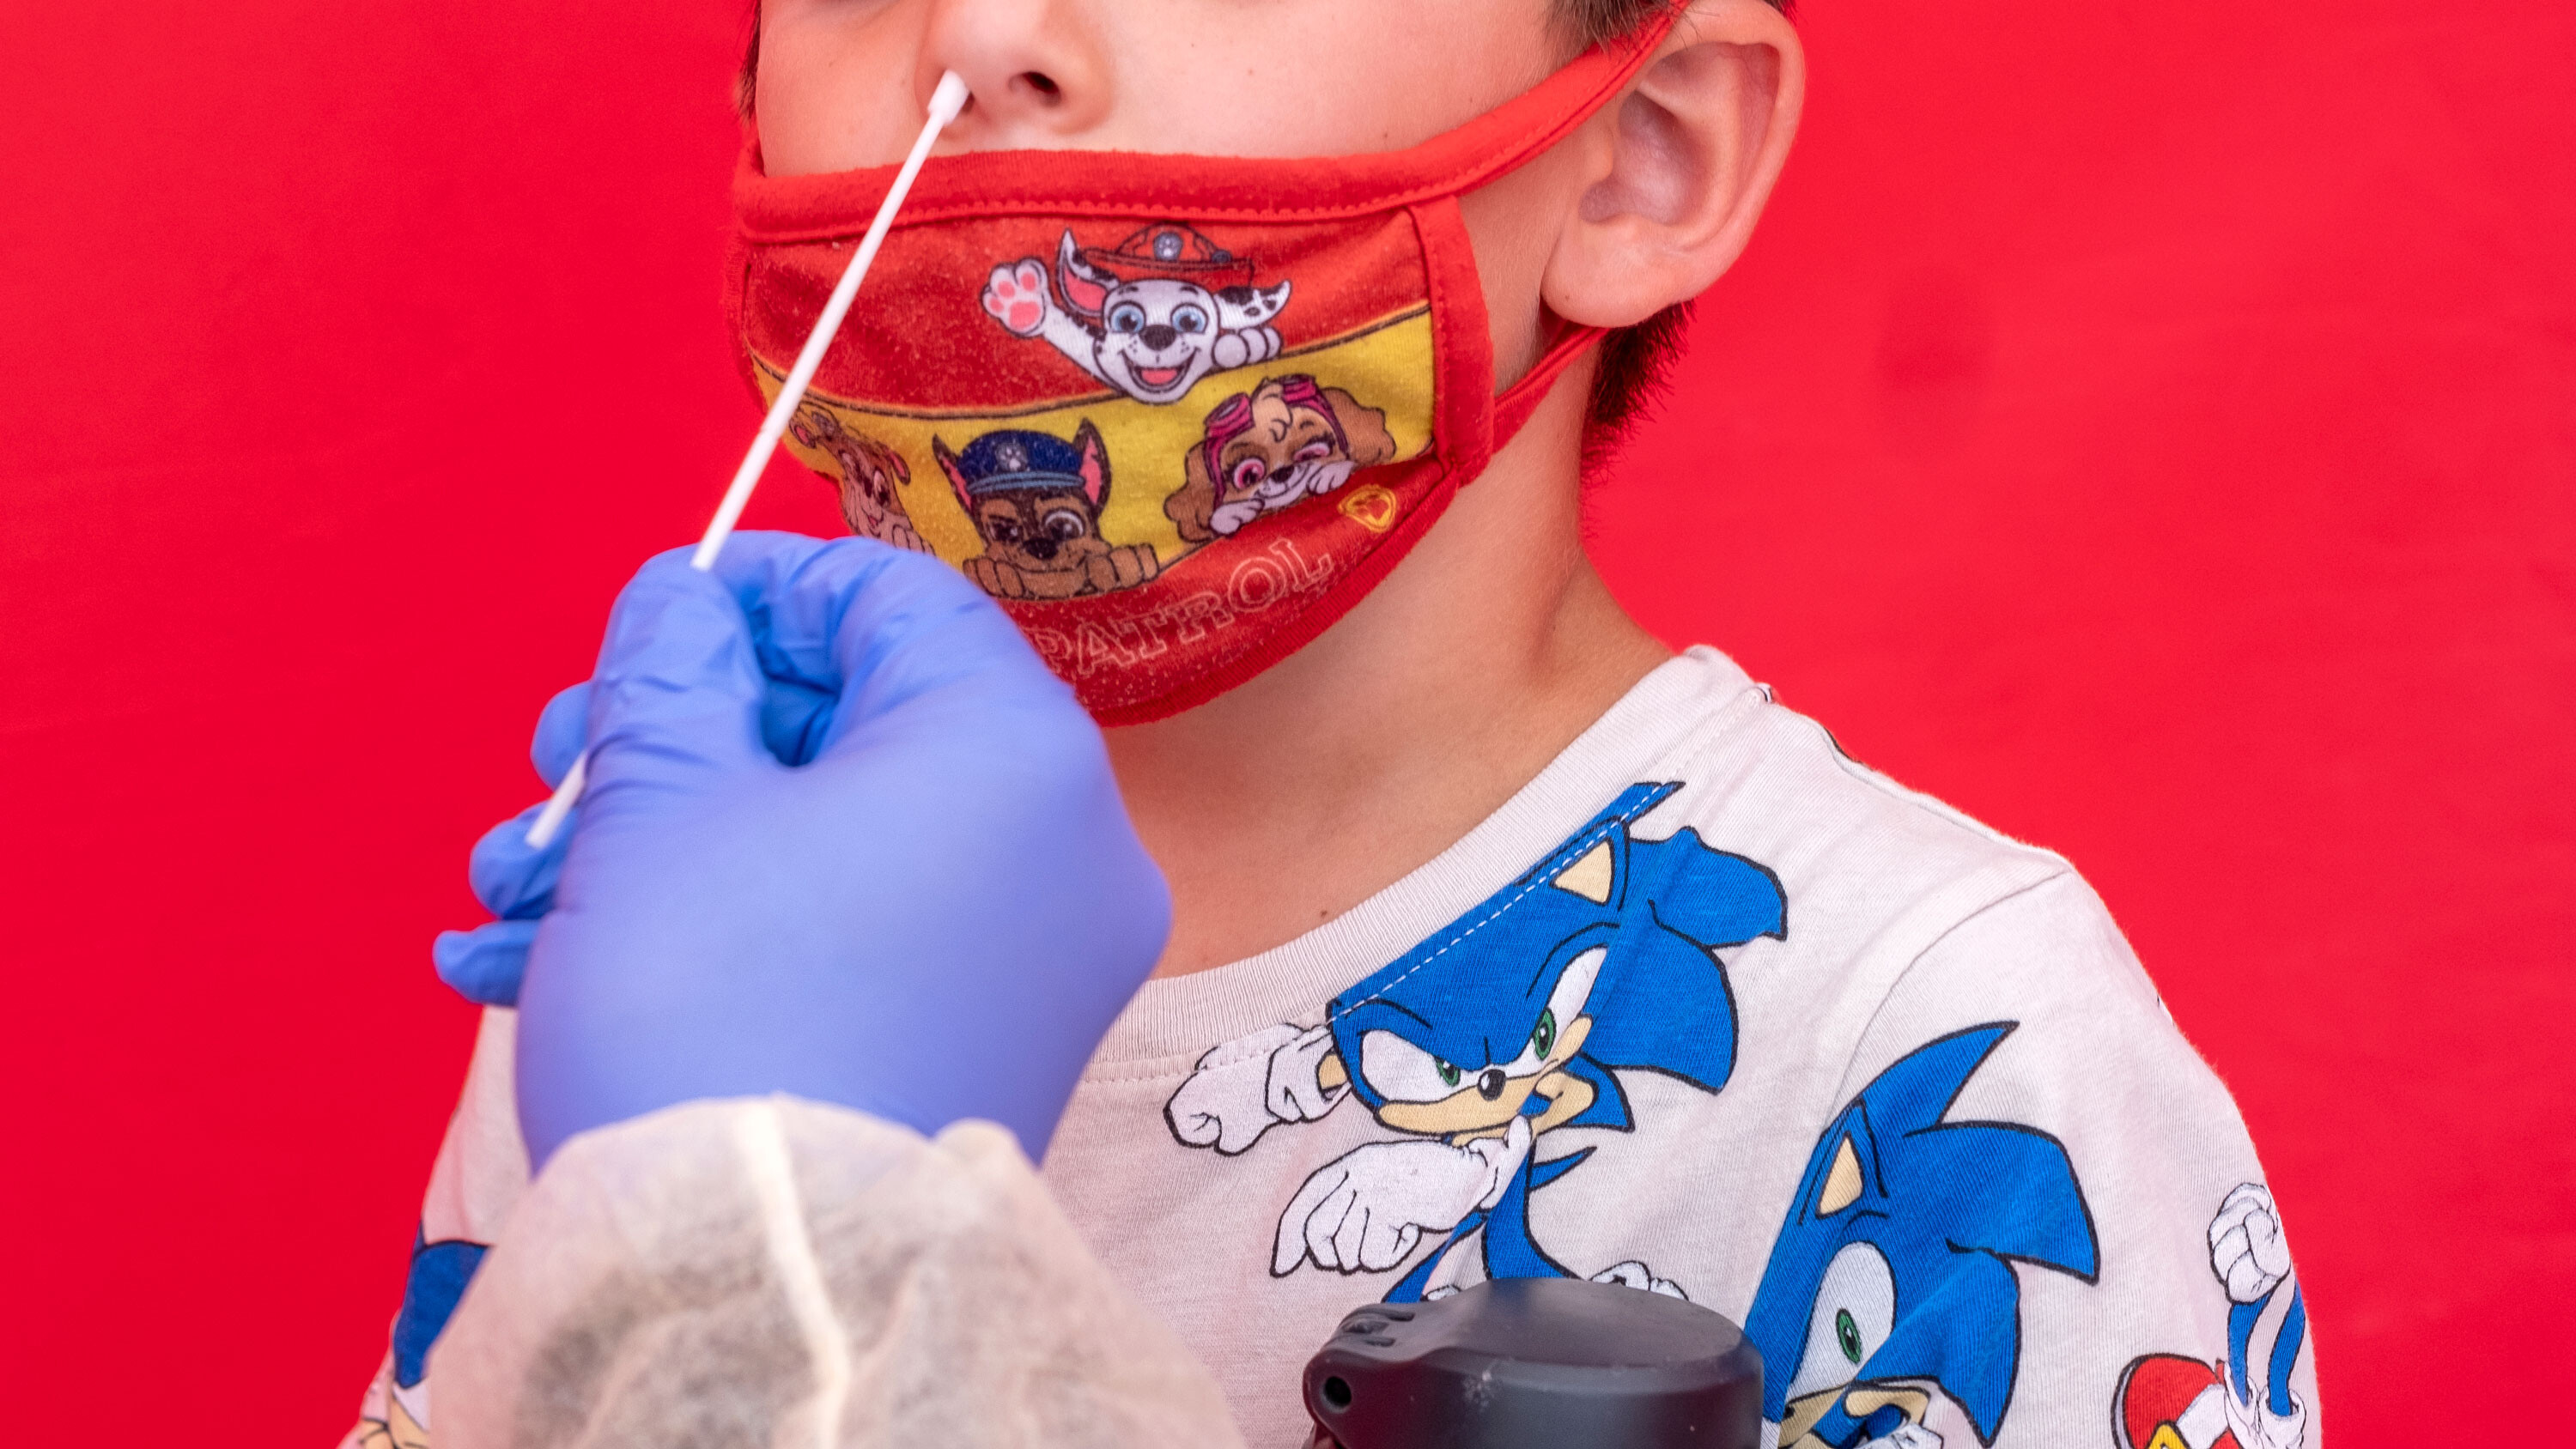 US Covid-19 cases among children are surging. Experts warn it may get worse